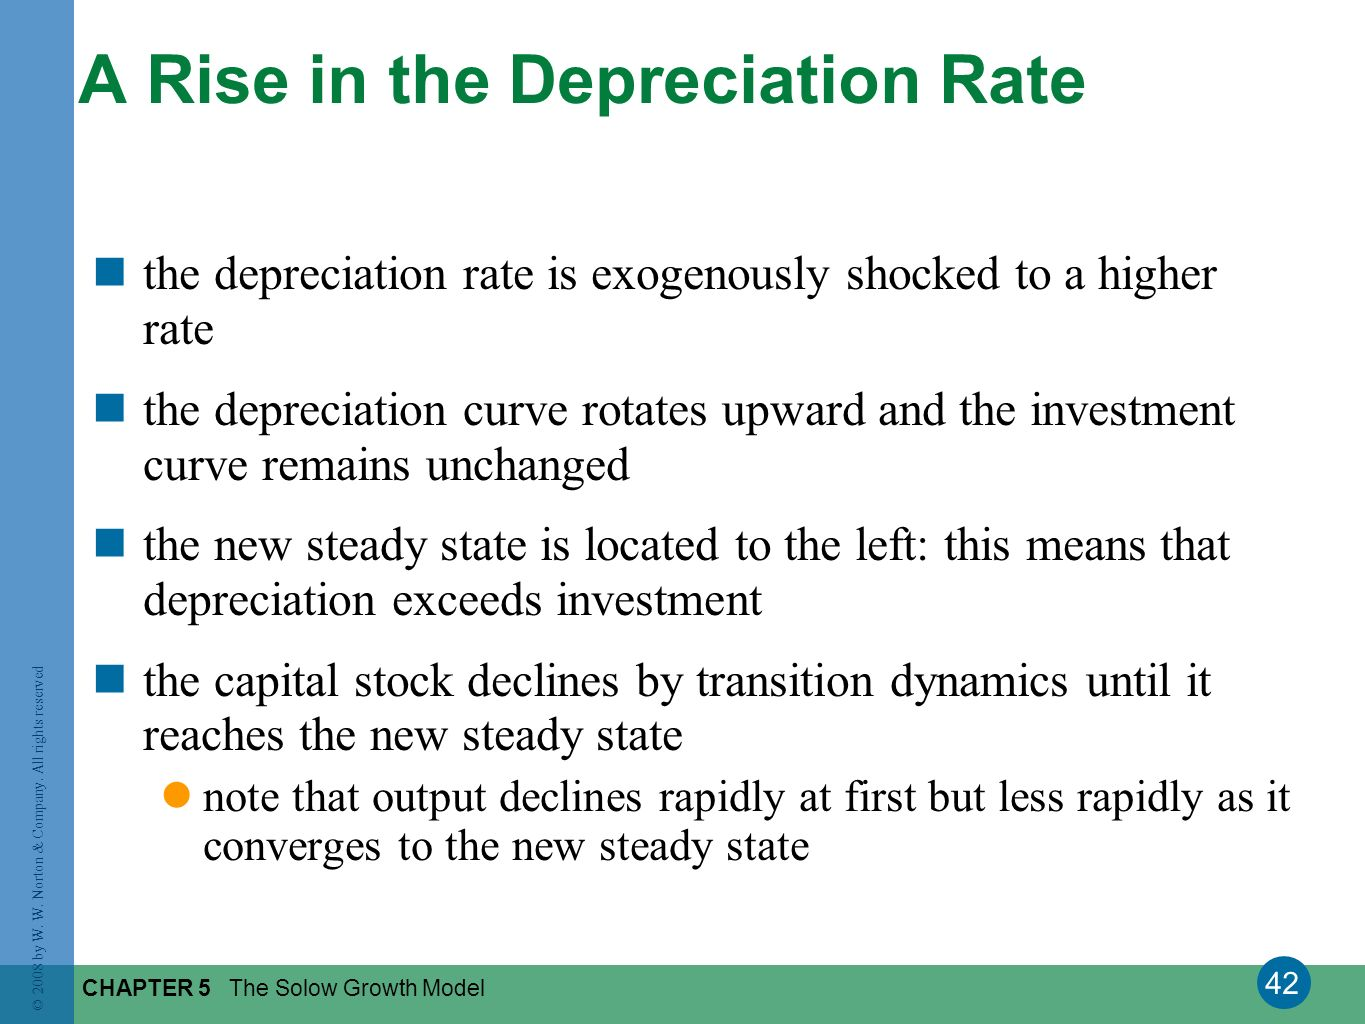 A Rise in the Depreciation Rate